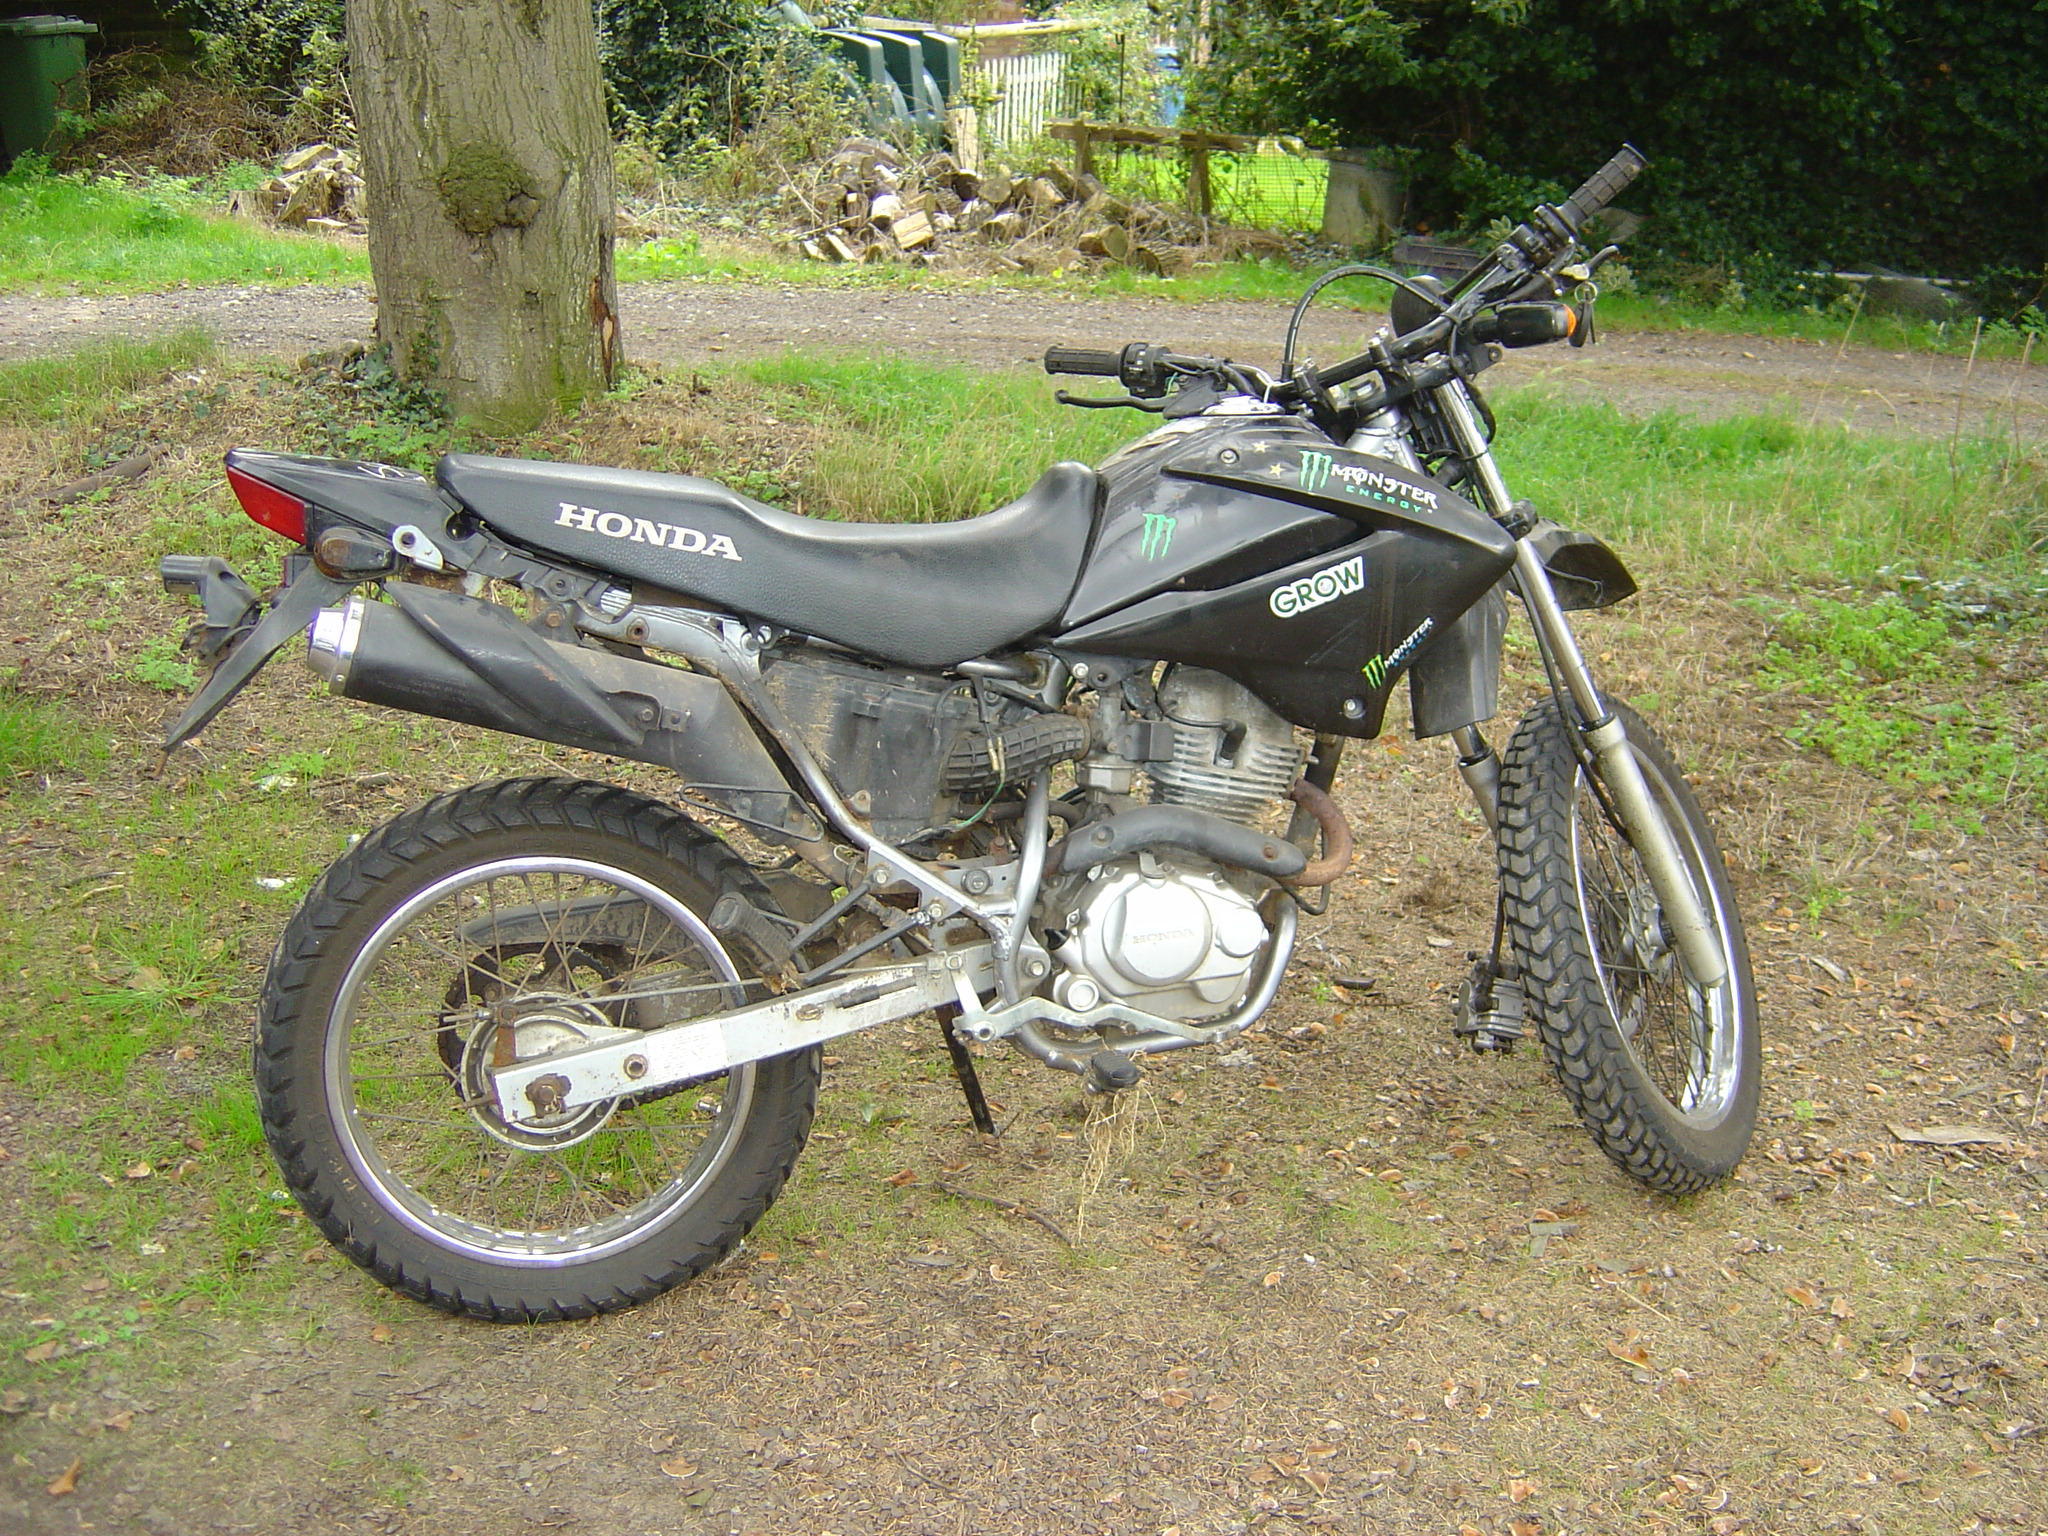 Honda XR125 Spare Parts | www.motor-bike-breakers.co.uk